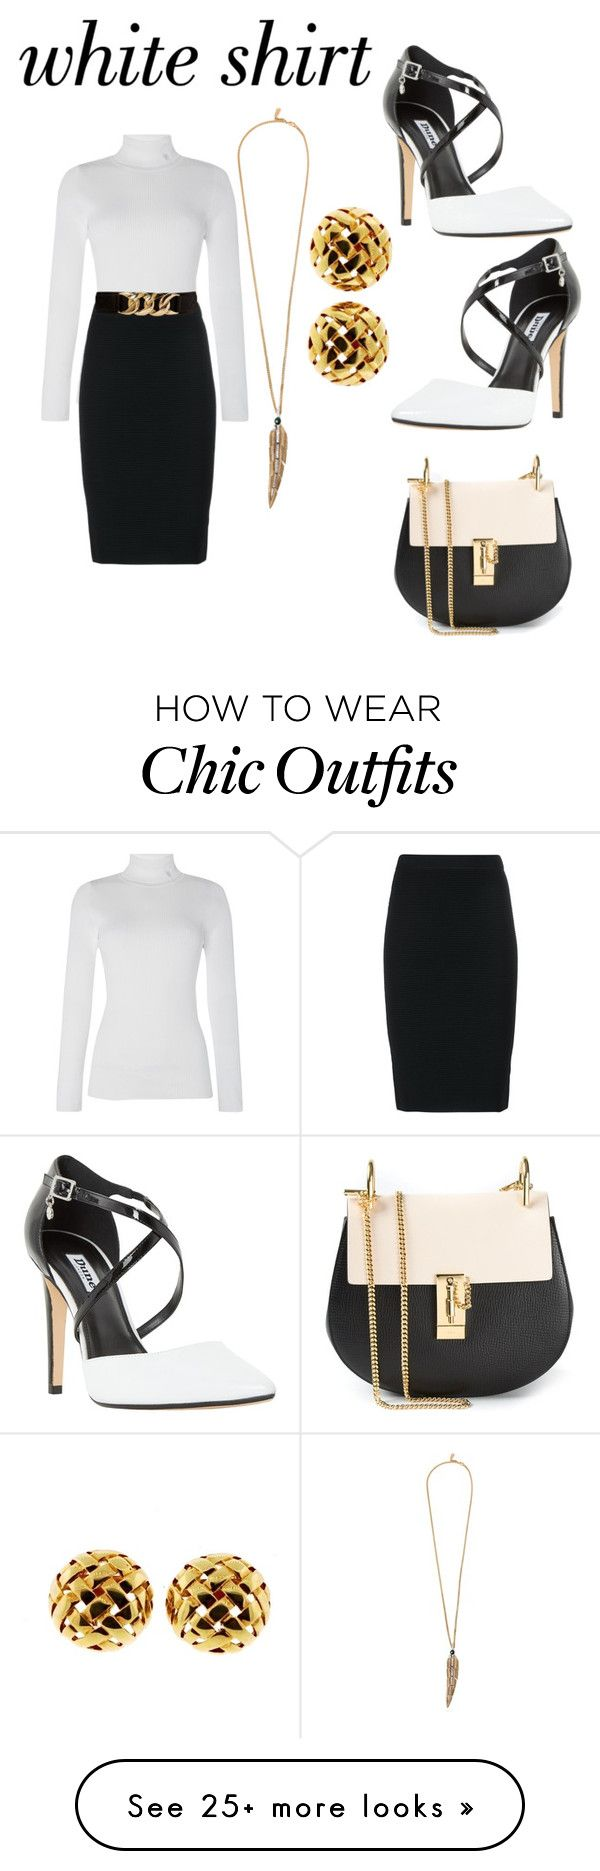 """Office Look"" by simone-kelly-coad-lutwyche on Polyvore featuring Lauren Ralph Lauren, Jonathan Simkhai, Forever 21, Dune, Roberto Cavalli, Chloé, Tiffany & Co. and WardrobeStaples"